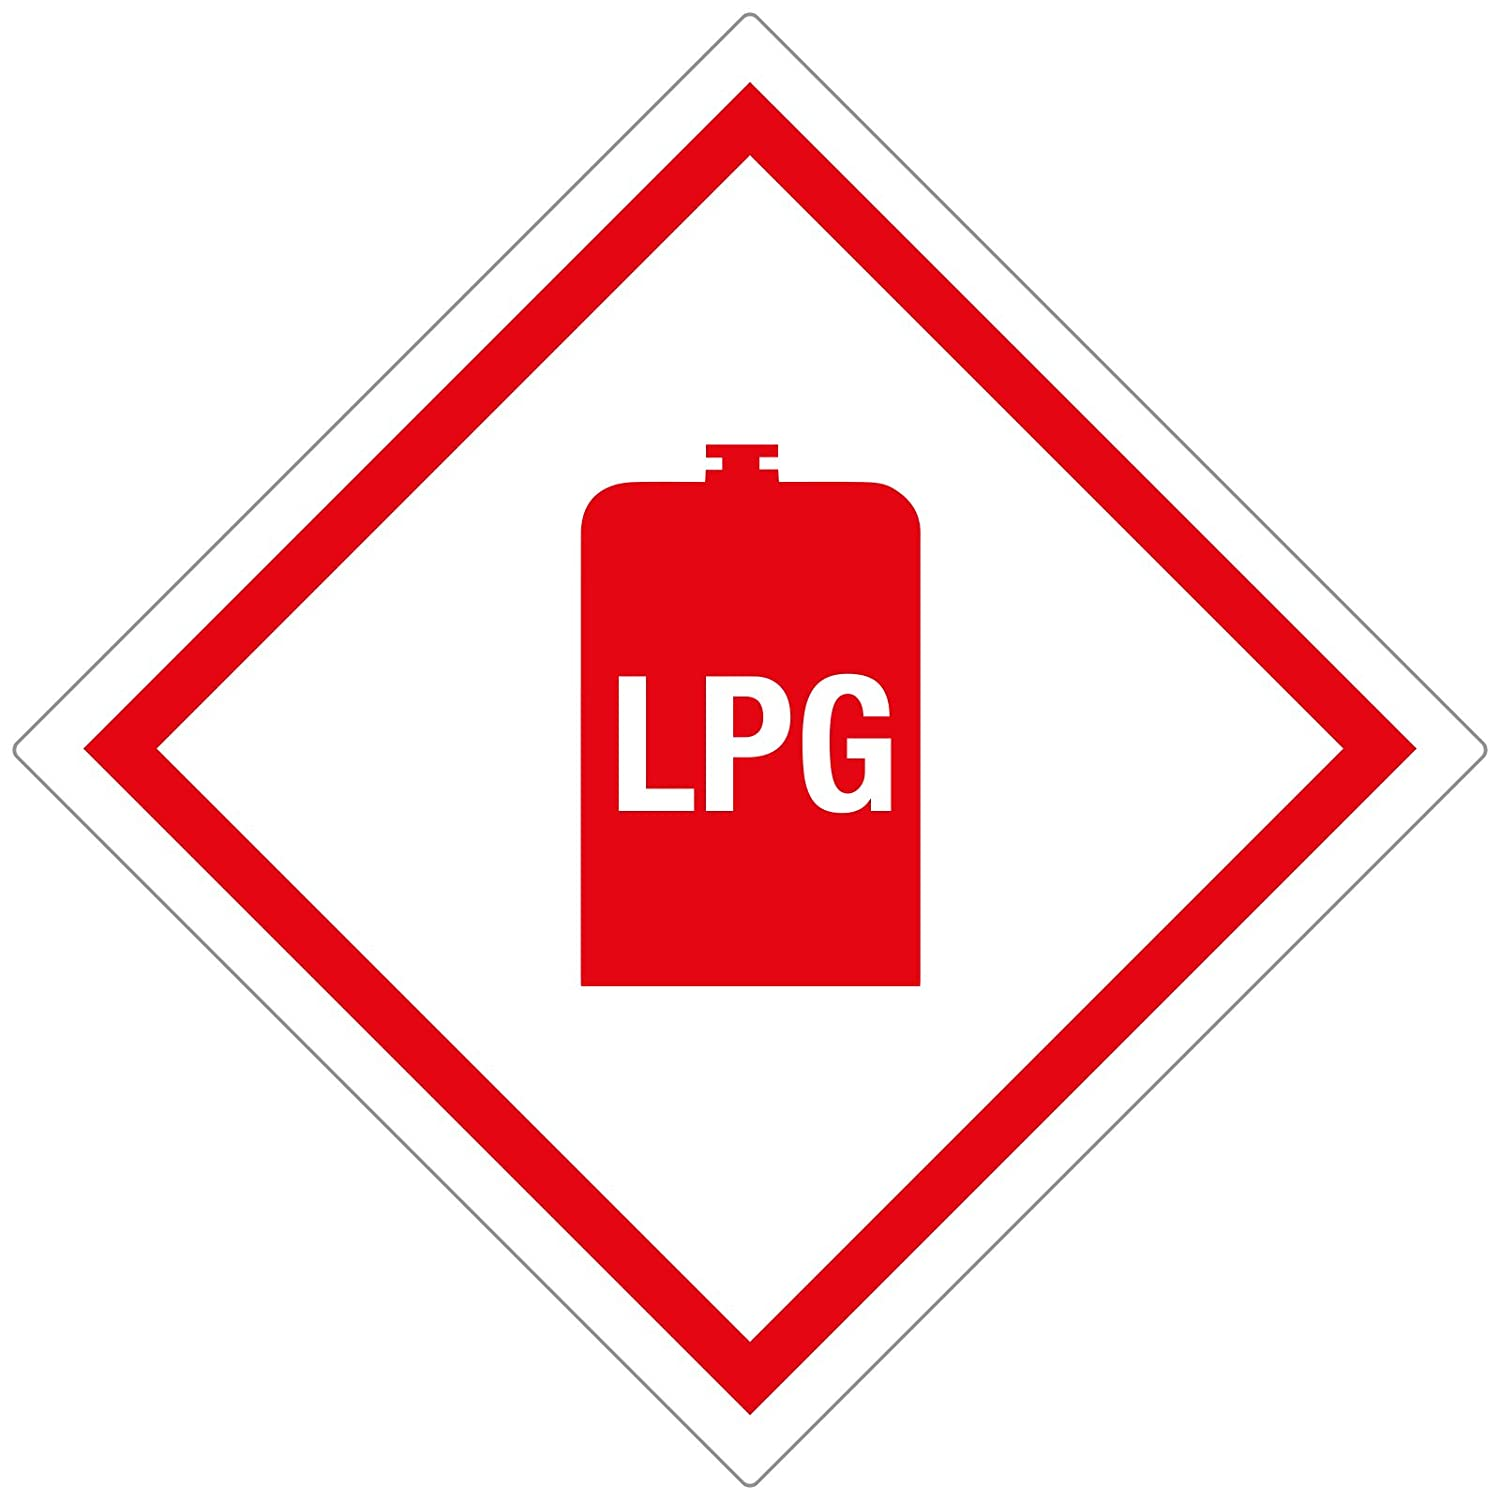 Lpg Logo For Cars | www.pixshark.com - Images Galleries ...